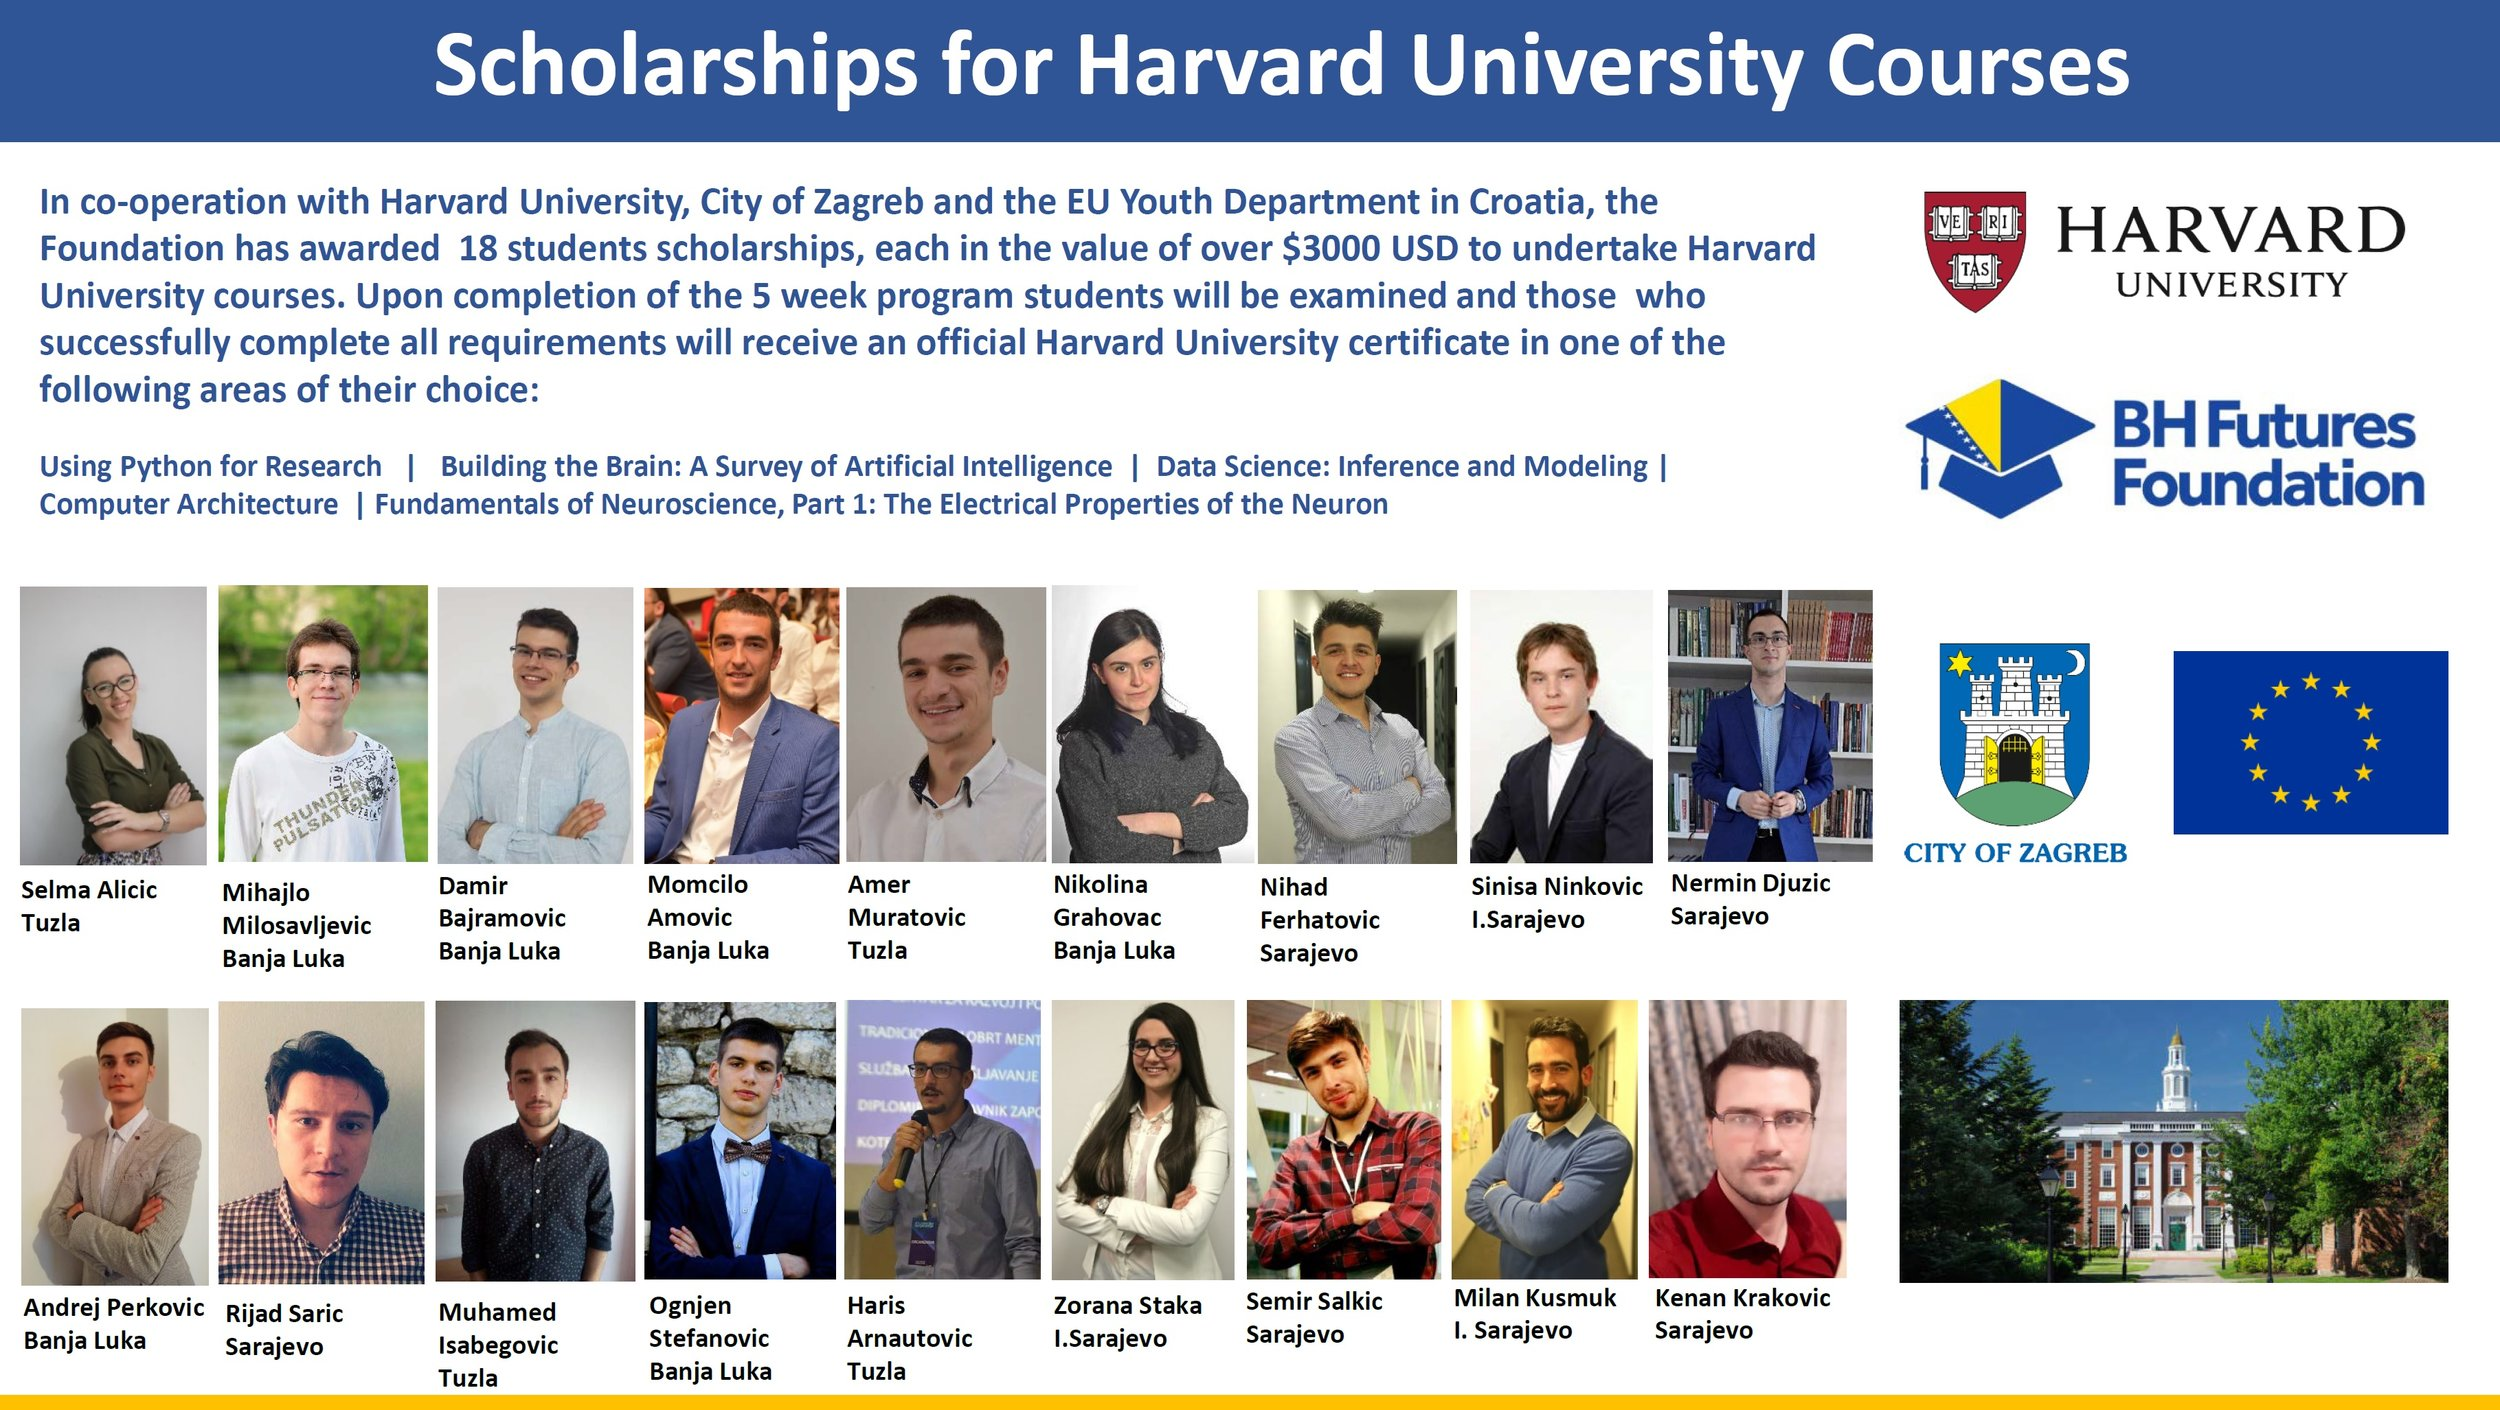 Havard courses bh future foundation.jpg